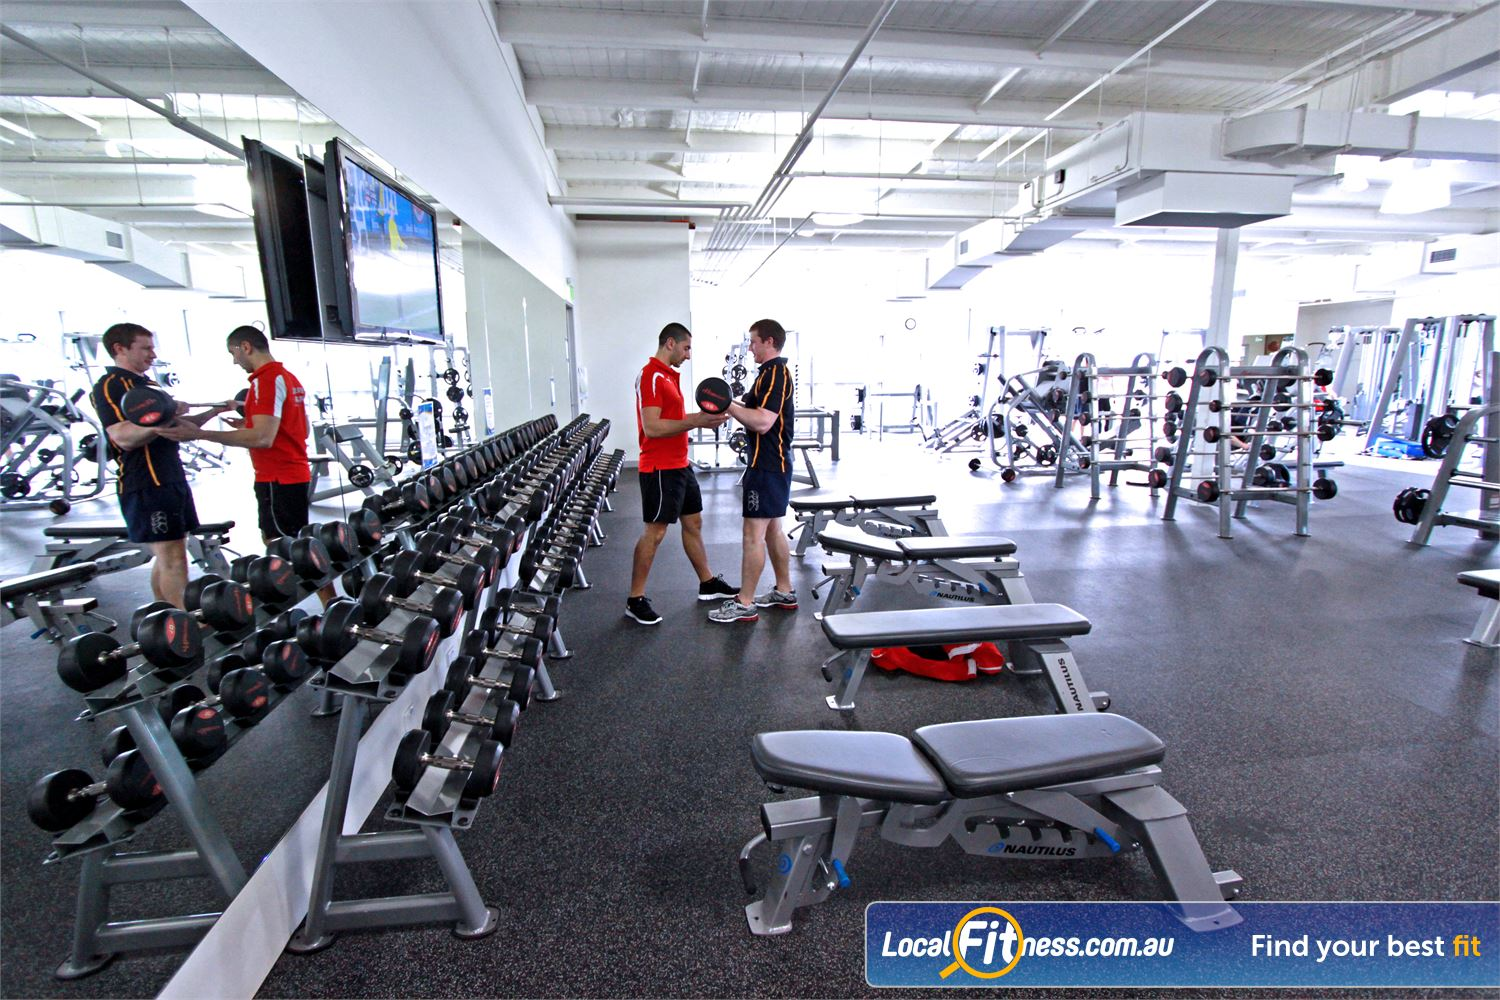 Genesis Fitness Clubs Near Watsonia Bundoora gym instructors can tailor a free-weights program for you.